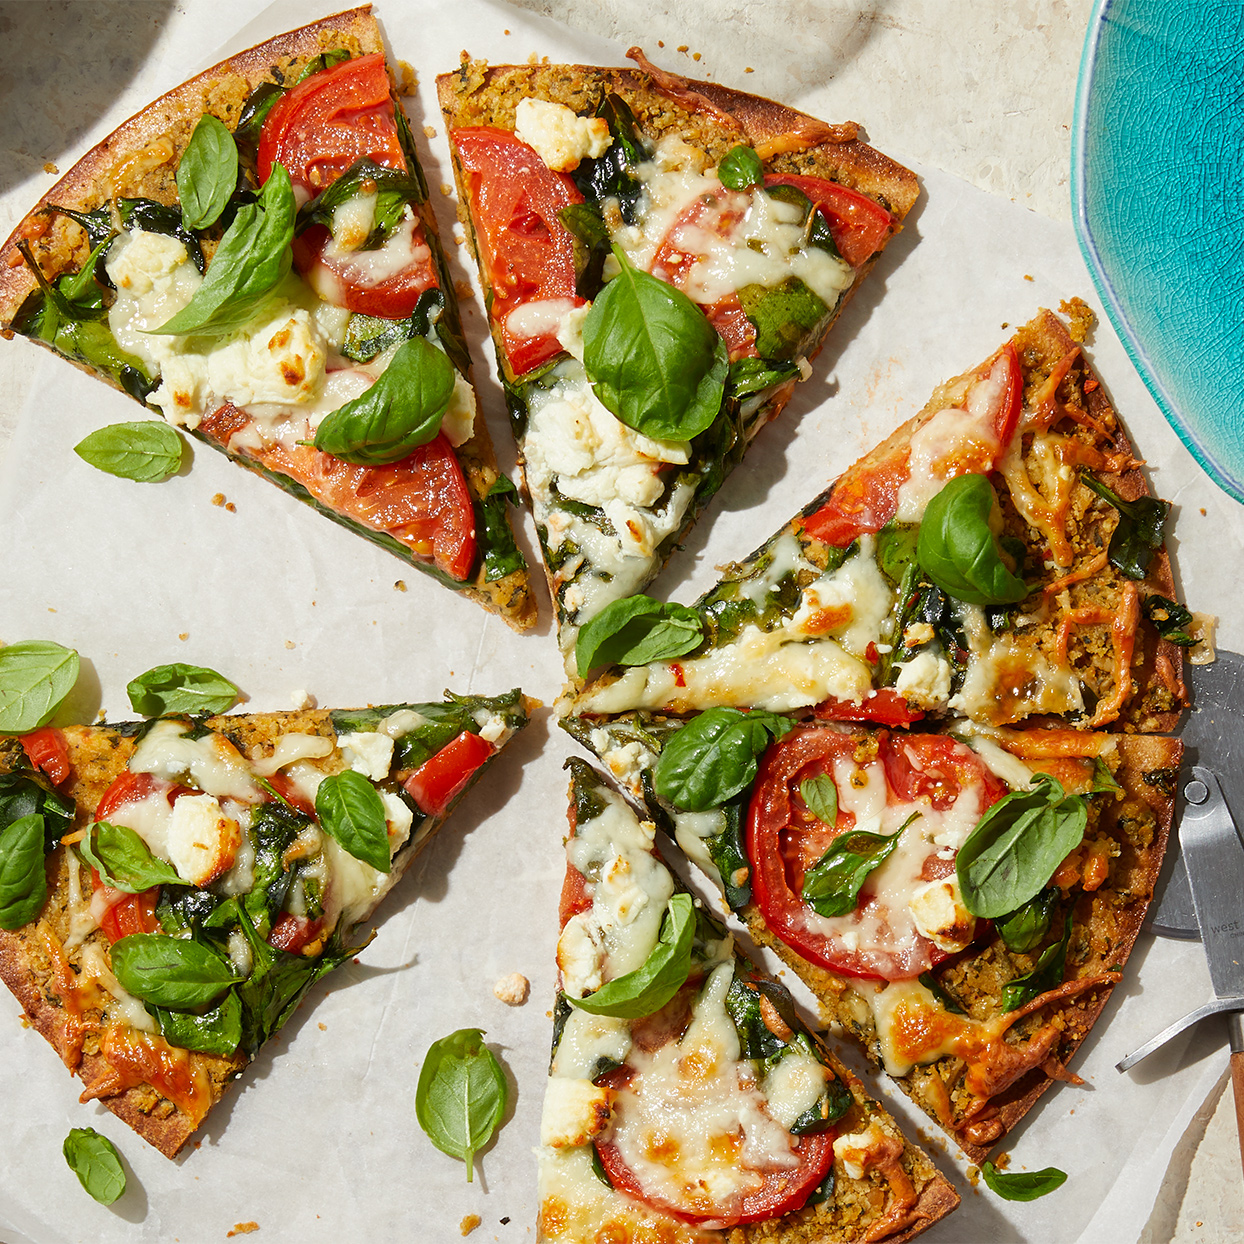 A flavorful combination of chickpeas, cashews, and garlic forms a protein-rich base for this homemade flatbread. Store-bought crust makes prep a breeze. Source: Diabetic Living Magazine, Summer 2020